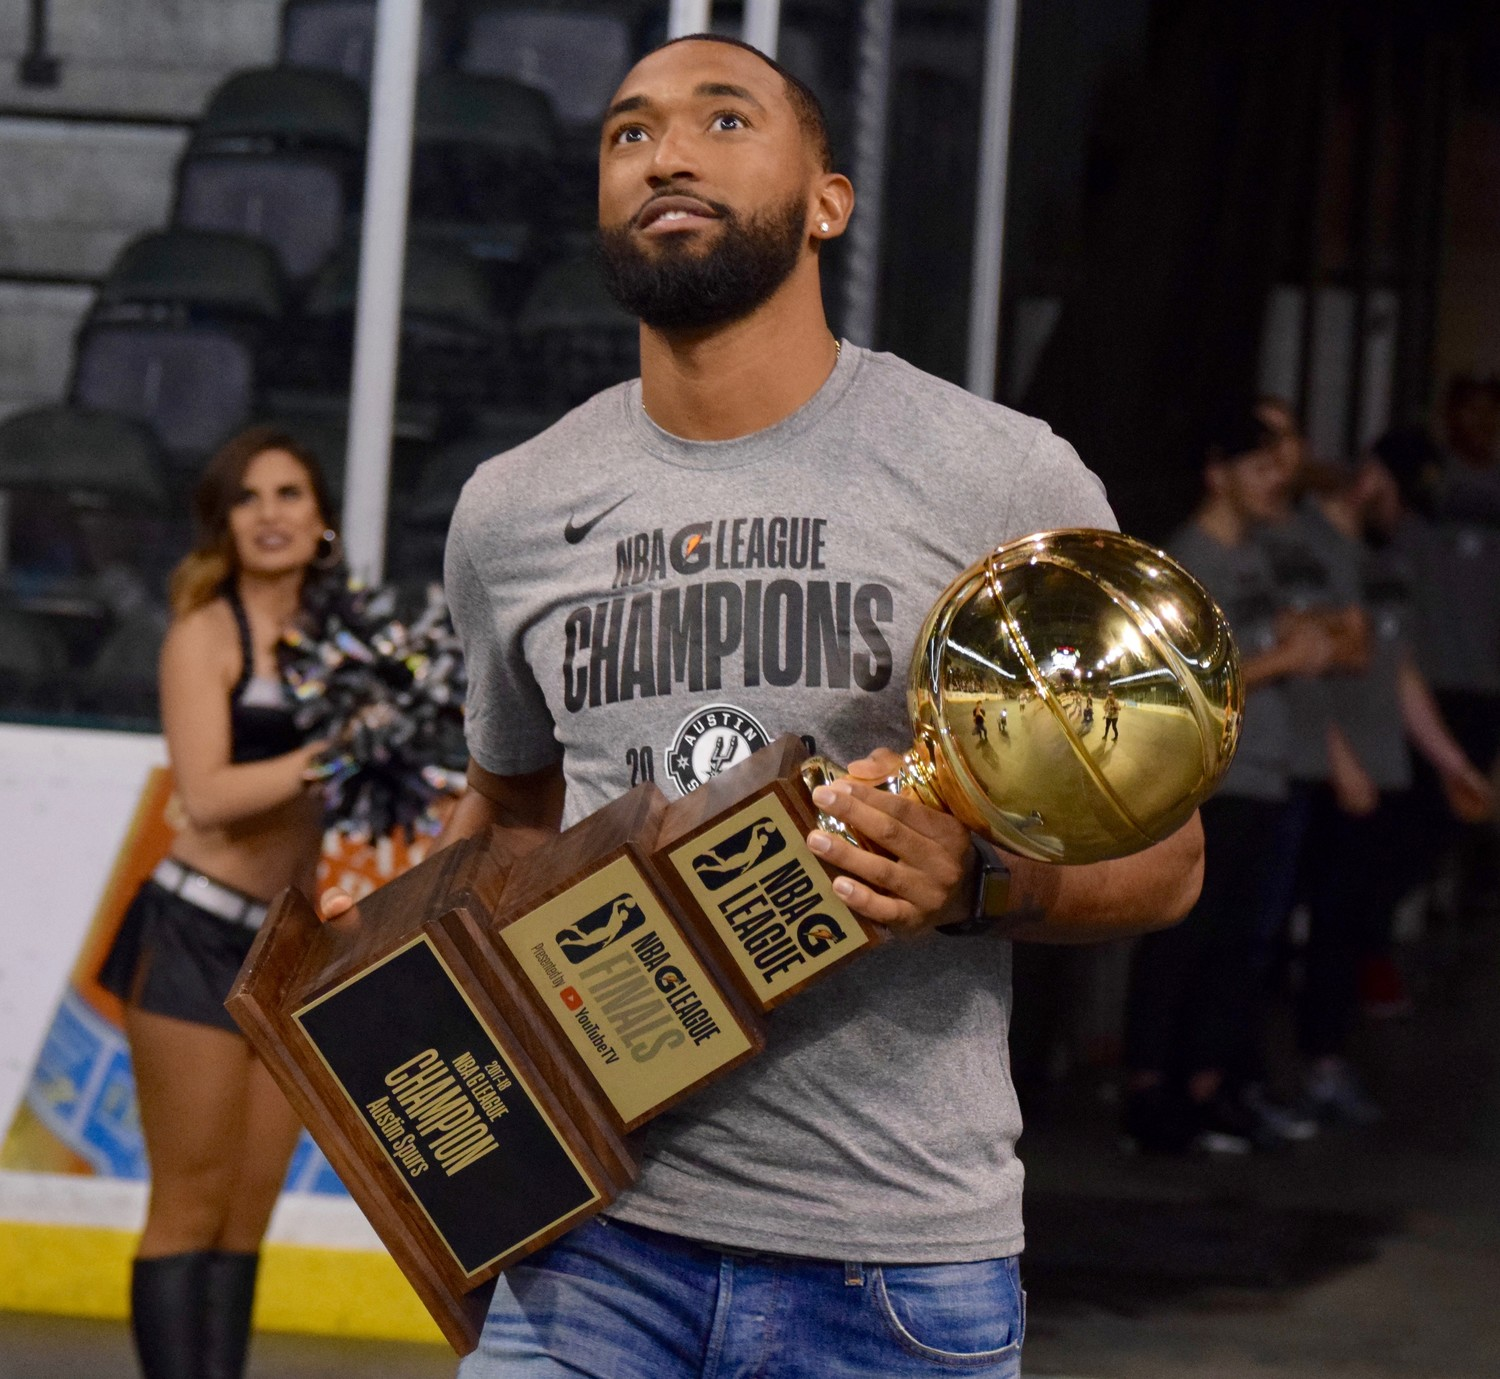 Spurs guard Darrun Hilliard carries the G League Championship to the stage at the Austin Spurs Celebration at the HEB Center.